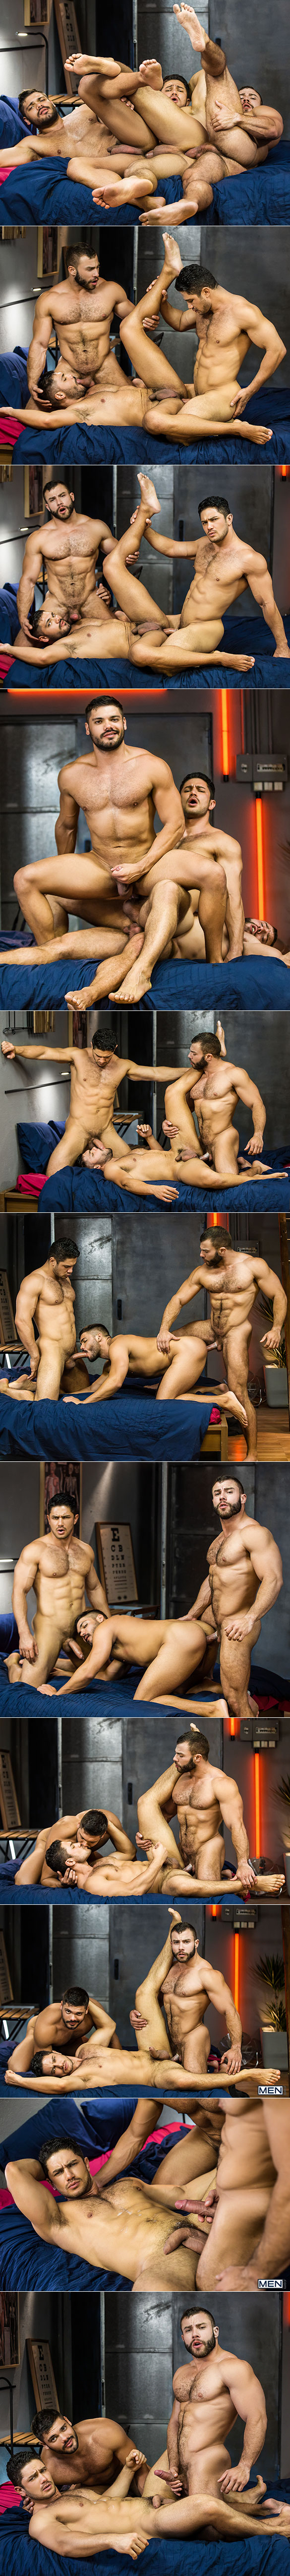 "Men.com: Dato Foland, Diego Reyes and Nicolas Brooks' threesome in ""The Boy Is Mine, Part 3"""